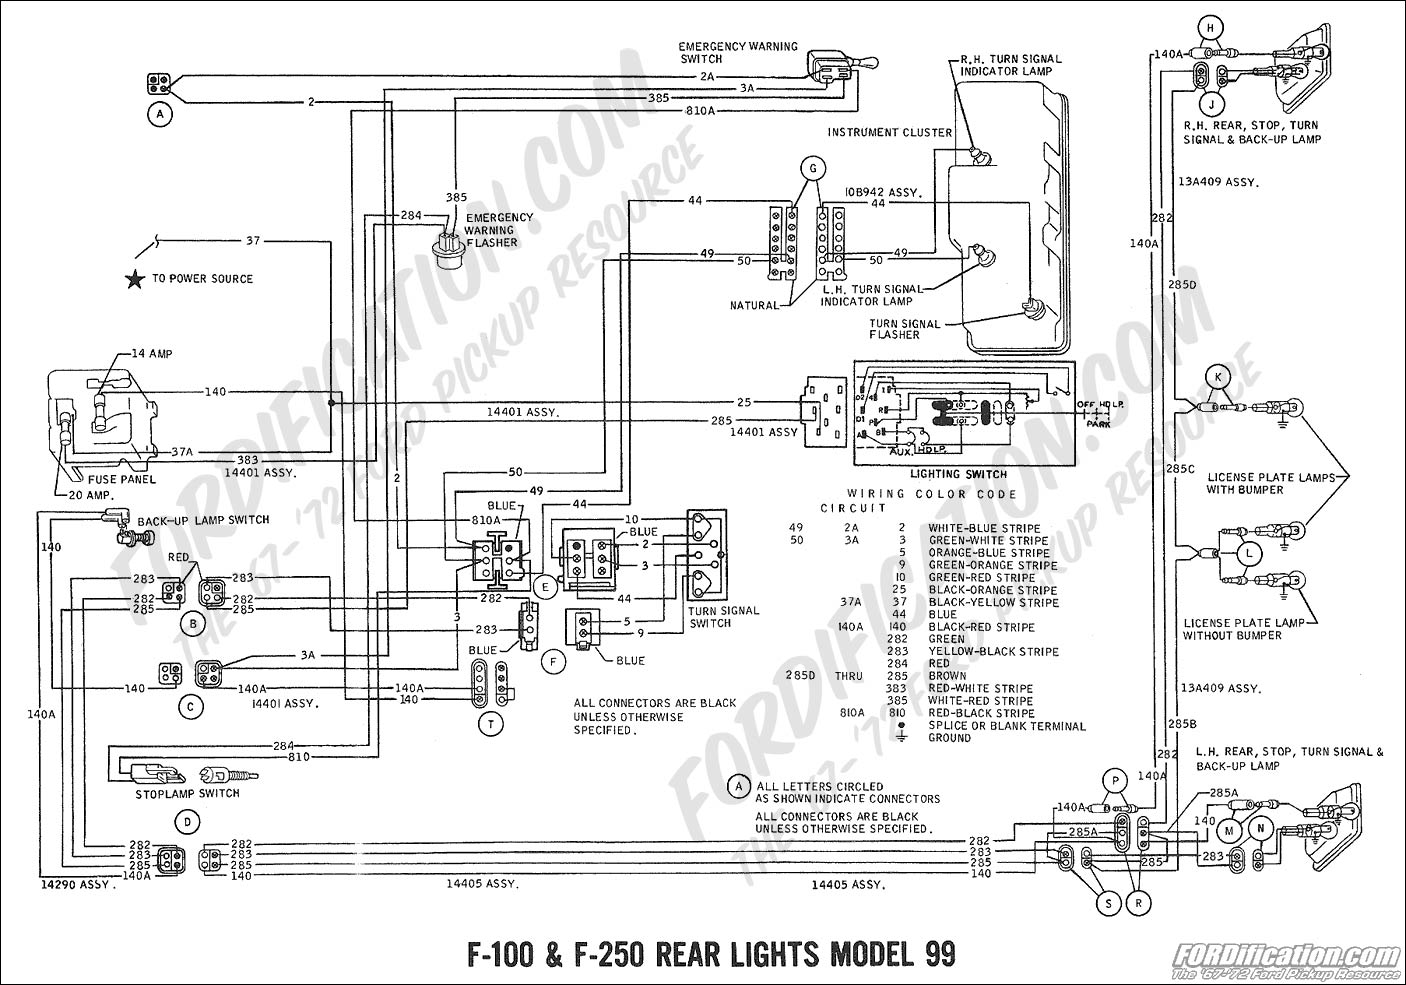 1968 Ford F100 Instrument Cluster Wiring Diagram 1955 Gt Circuits 99 Civic Courtesy Lights 1956